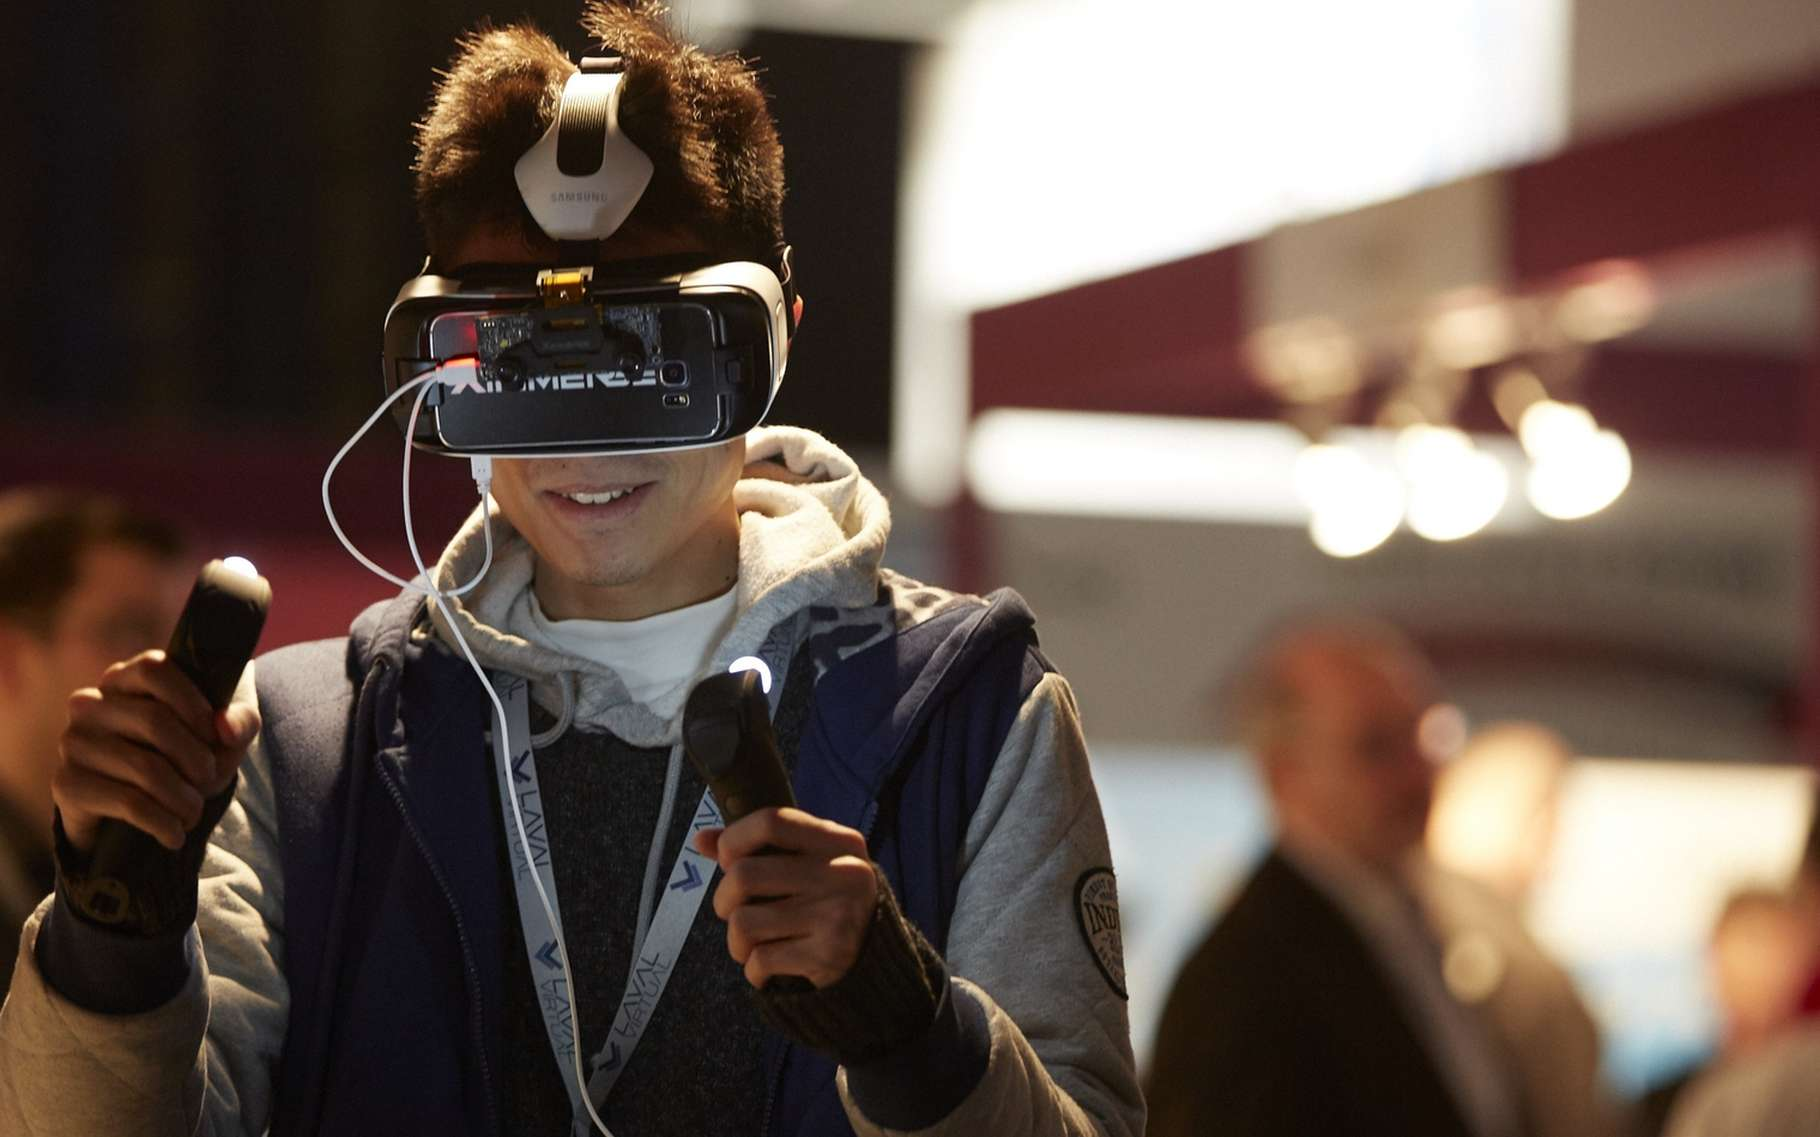 En 2018, le salon Laval Virtual soufflera ses 20 bougies. © Laval Virtual